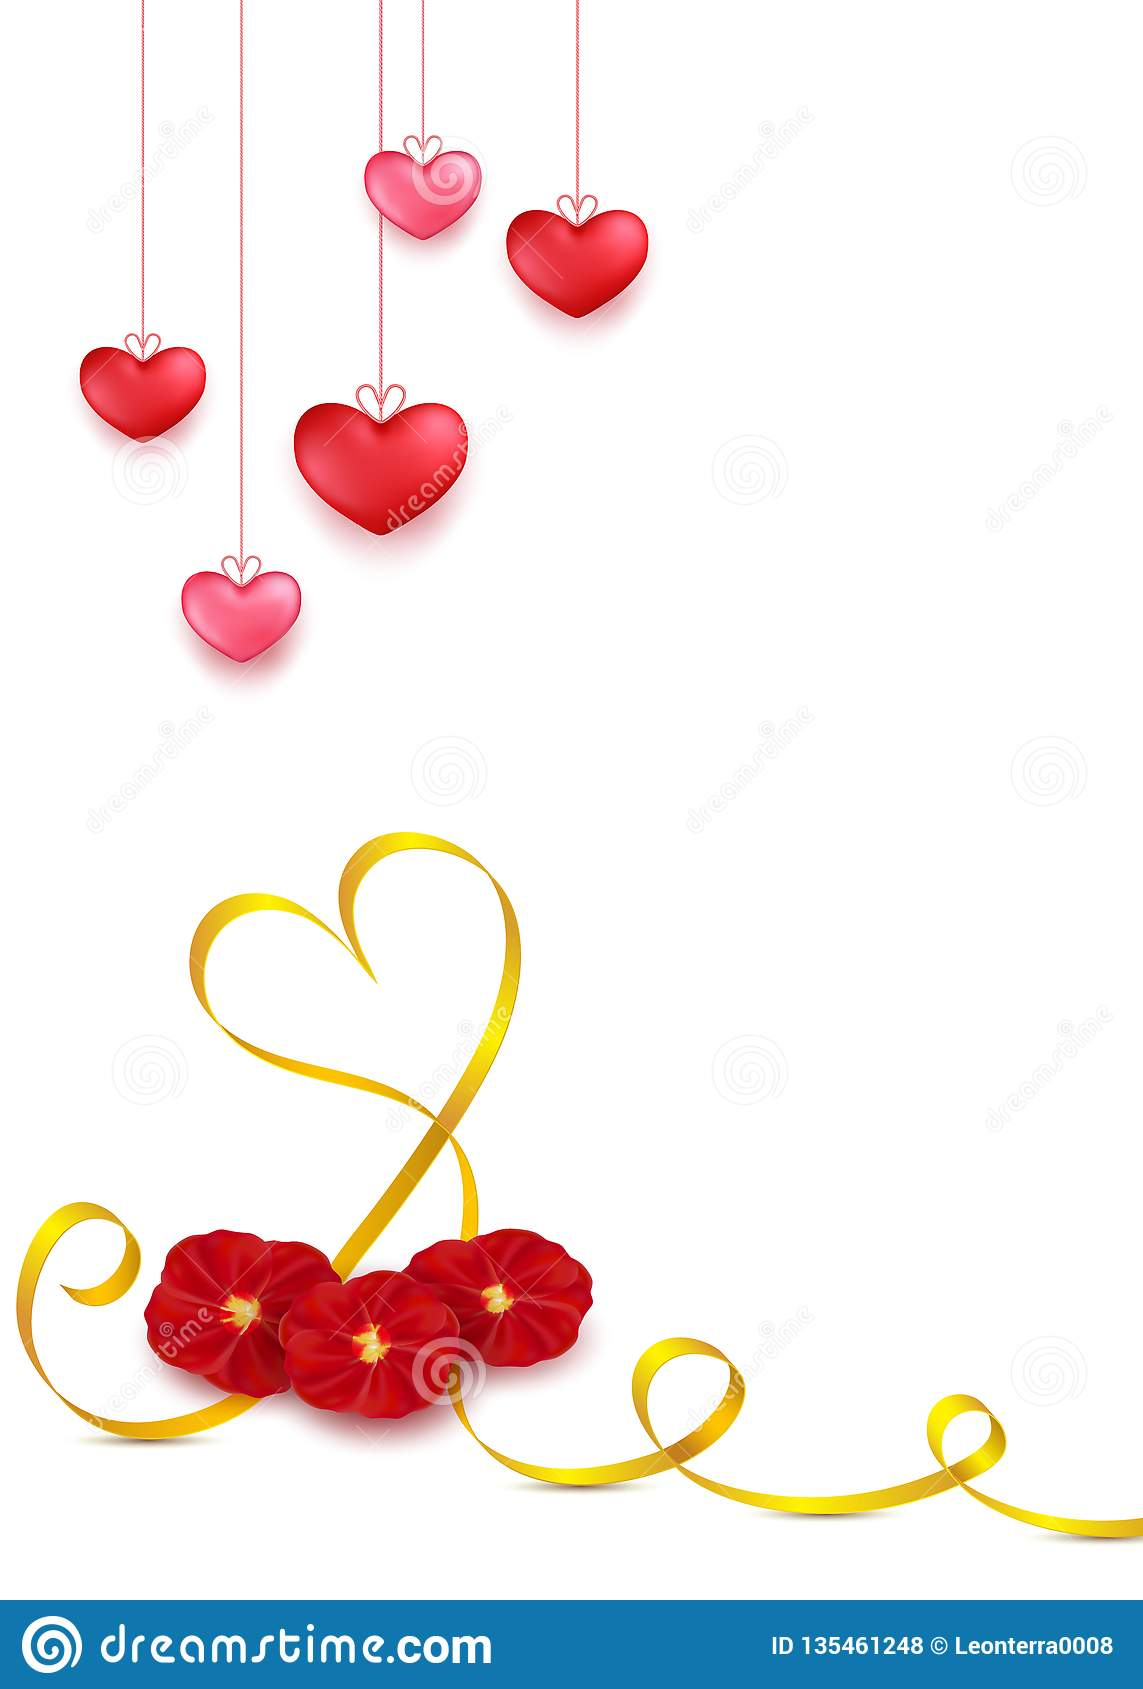 Valentines day greeting card design in 3d style on white background. Hanging red hearts with golden stripe and red rose petals flo